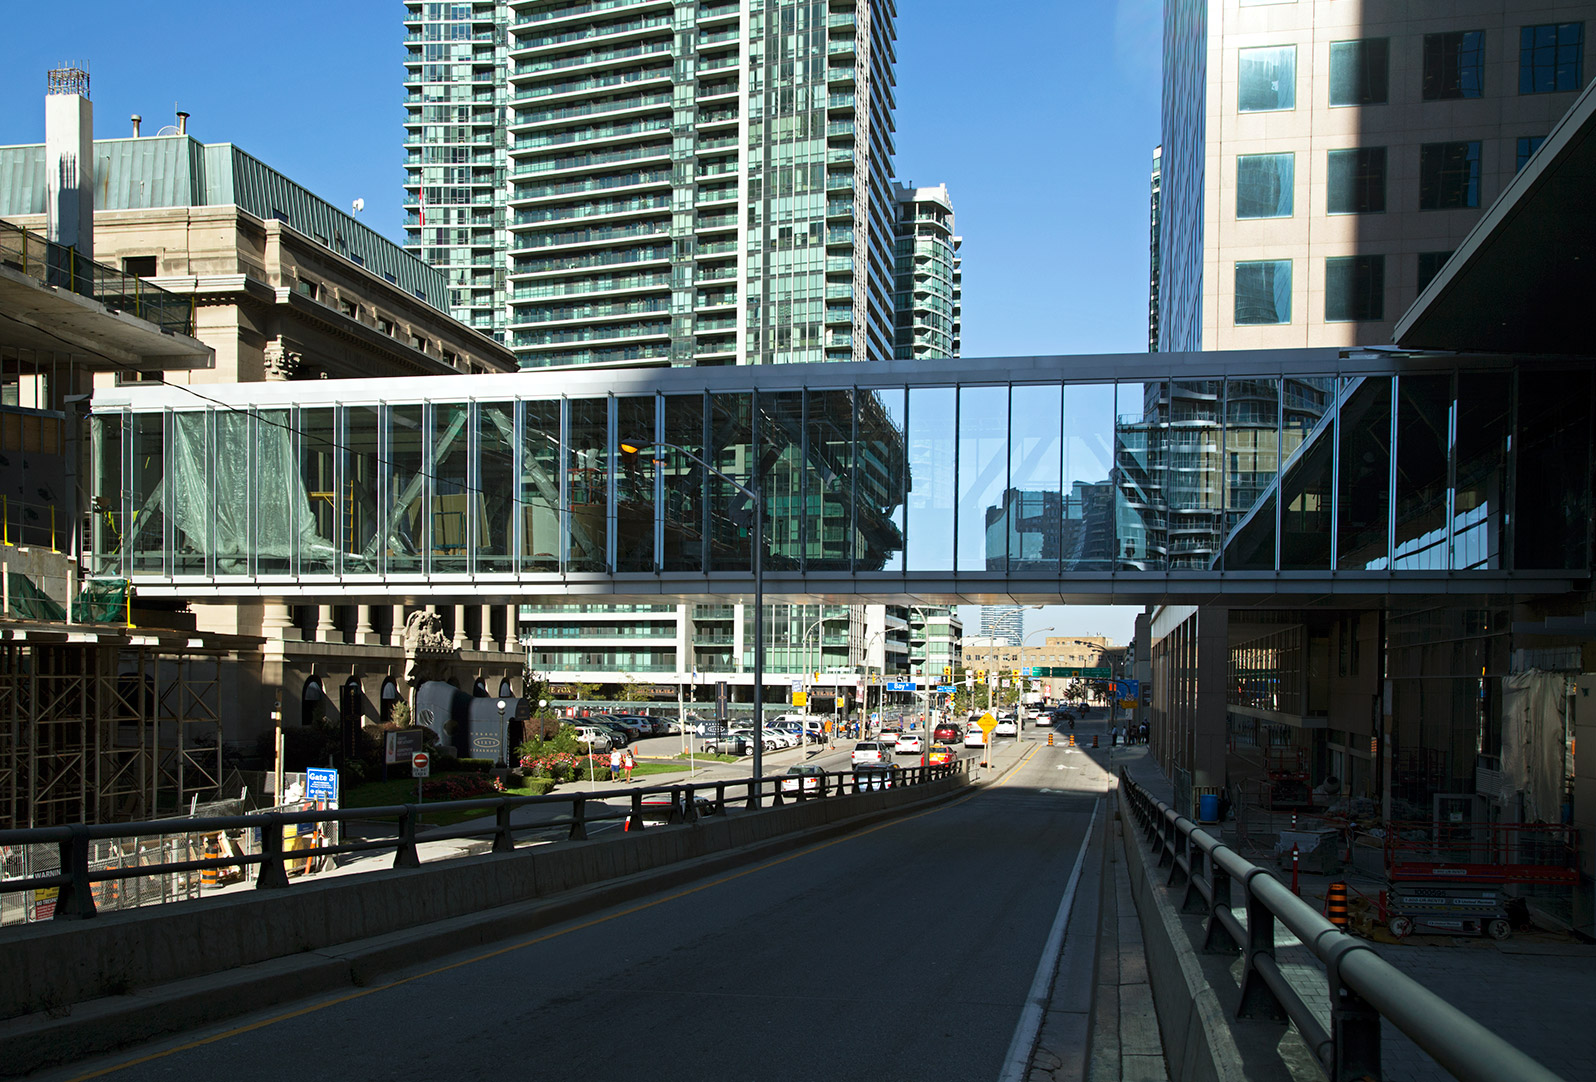 20141017. Toronto's first pedestrian overpass over an off-ramp c